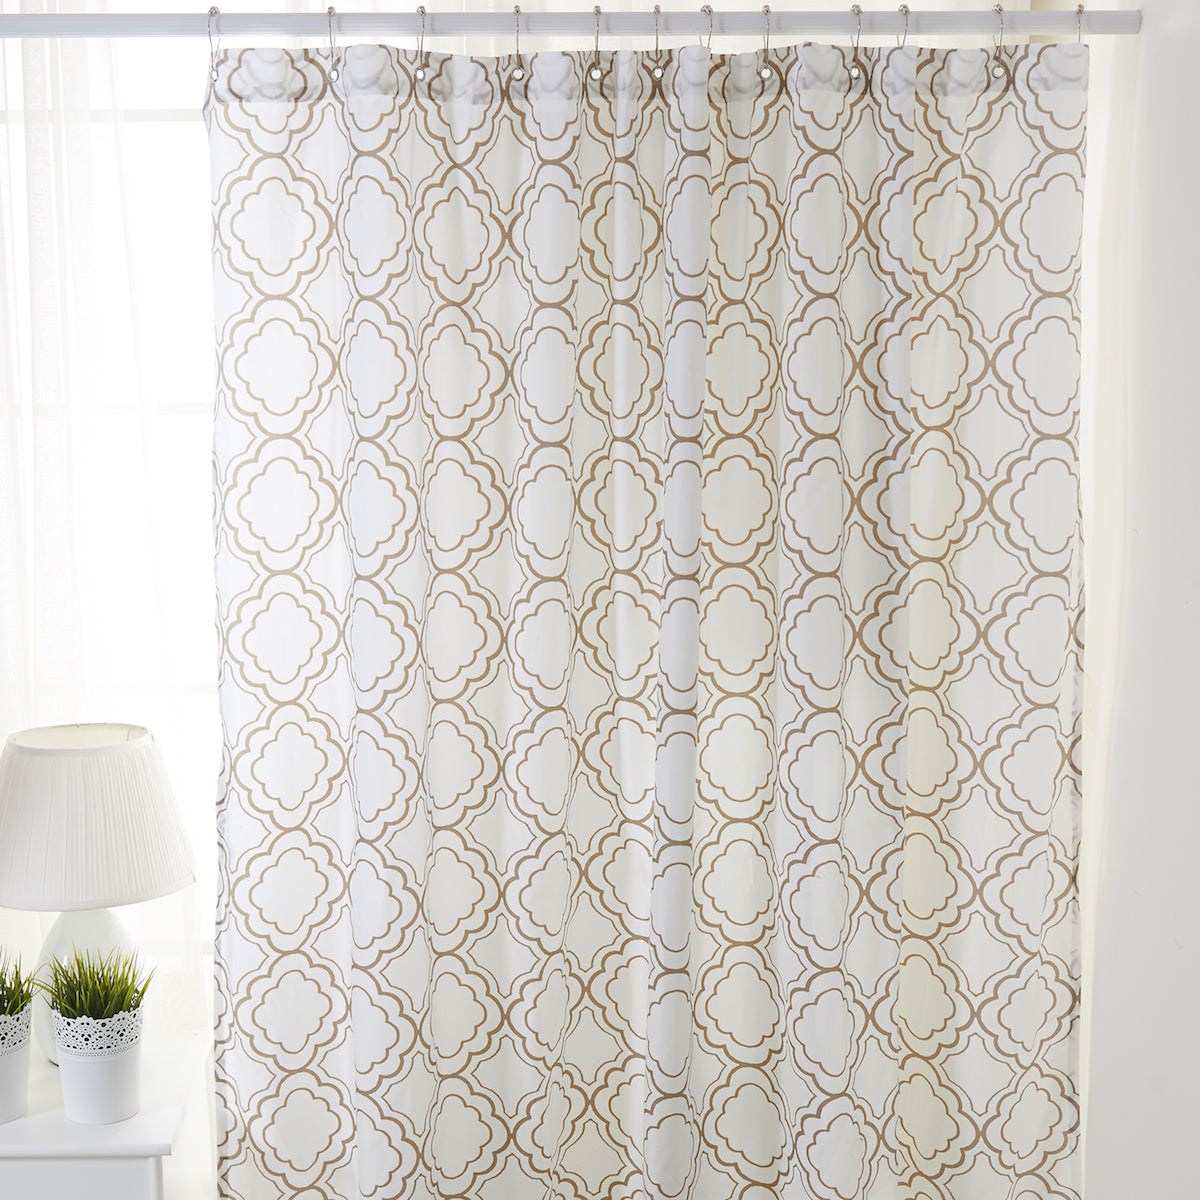 moda at image taupe nordstrom shower rack shop gateway of product curtain neutral home curtains